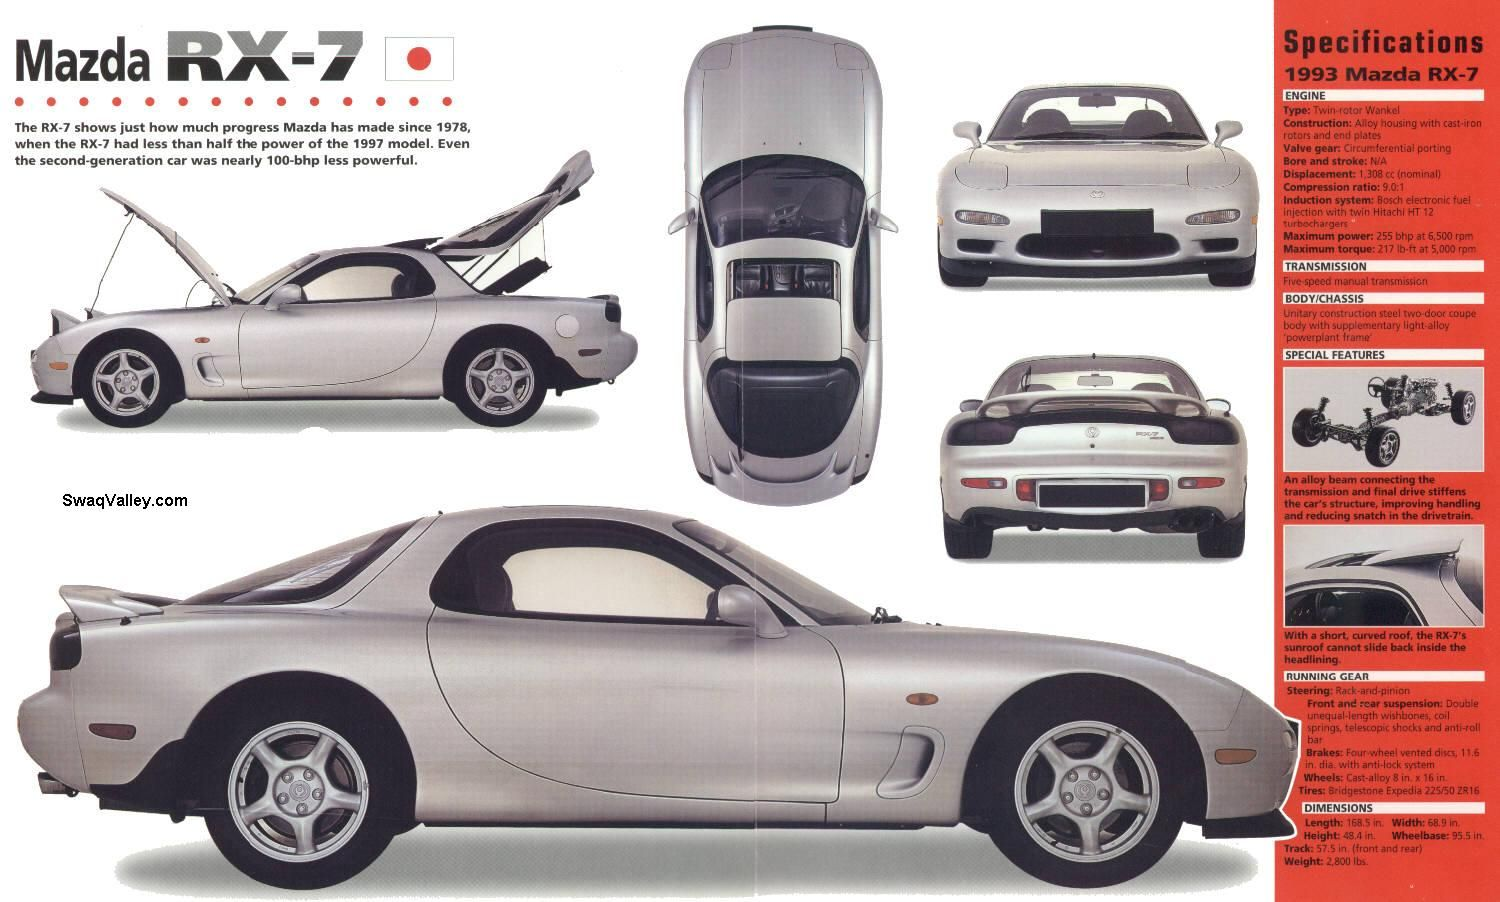 1993 mazda rx 7 weighed nearly nothing 255hp rear wheel drive oil burner all this with no. Black Bedroom Furniture Sets. Home Design Ideas